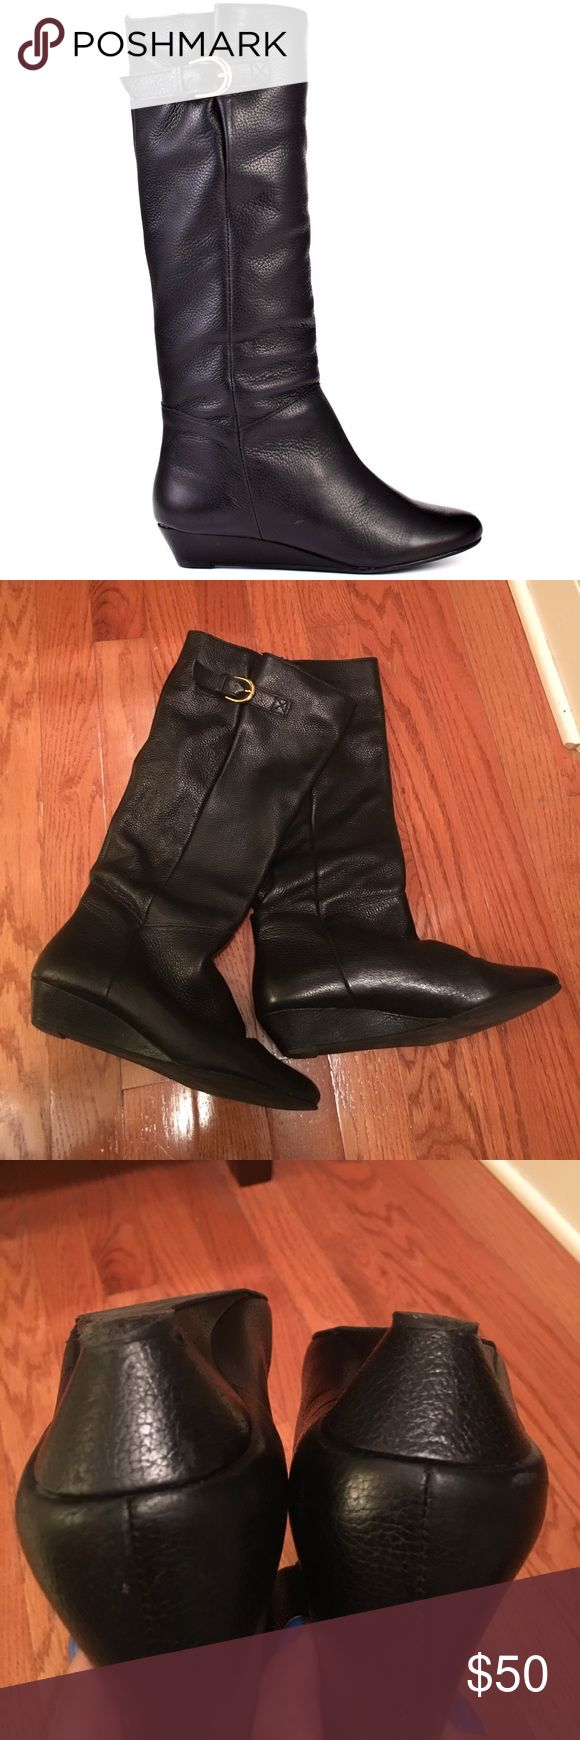 Black flat boot Steven by Steve Madden Size 7 1/2 Black Steven By Steve Madden Intyce flat leather boot with gold buckle. Worn one winter season...pictures are accurate of wear. Still have lots of miles to be walked in! Sorry no trades...bundle and save! Steven by Steve Madden Shoes